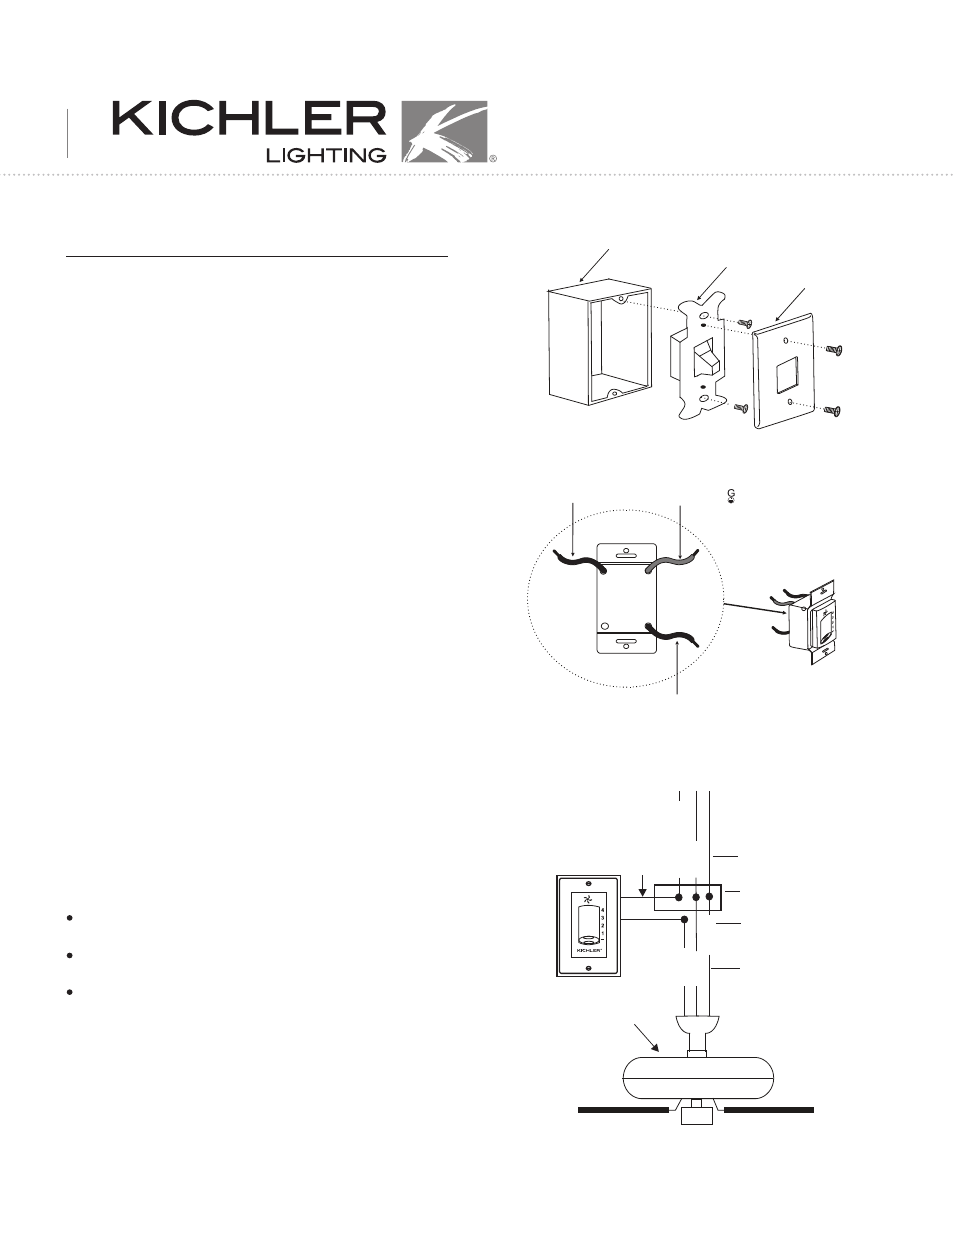 doc001 kichler 337012 user manual 3 pages